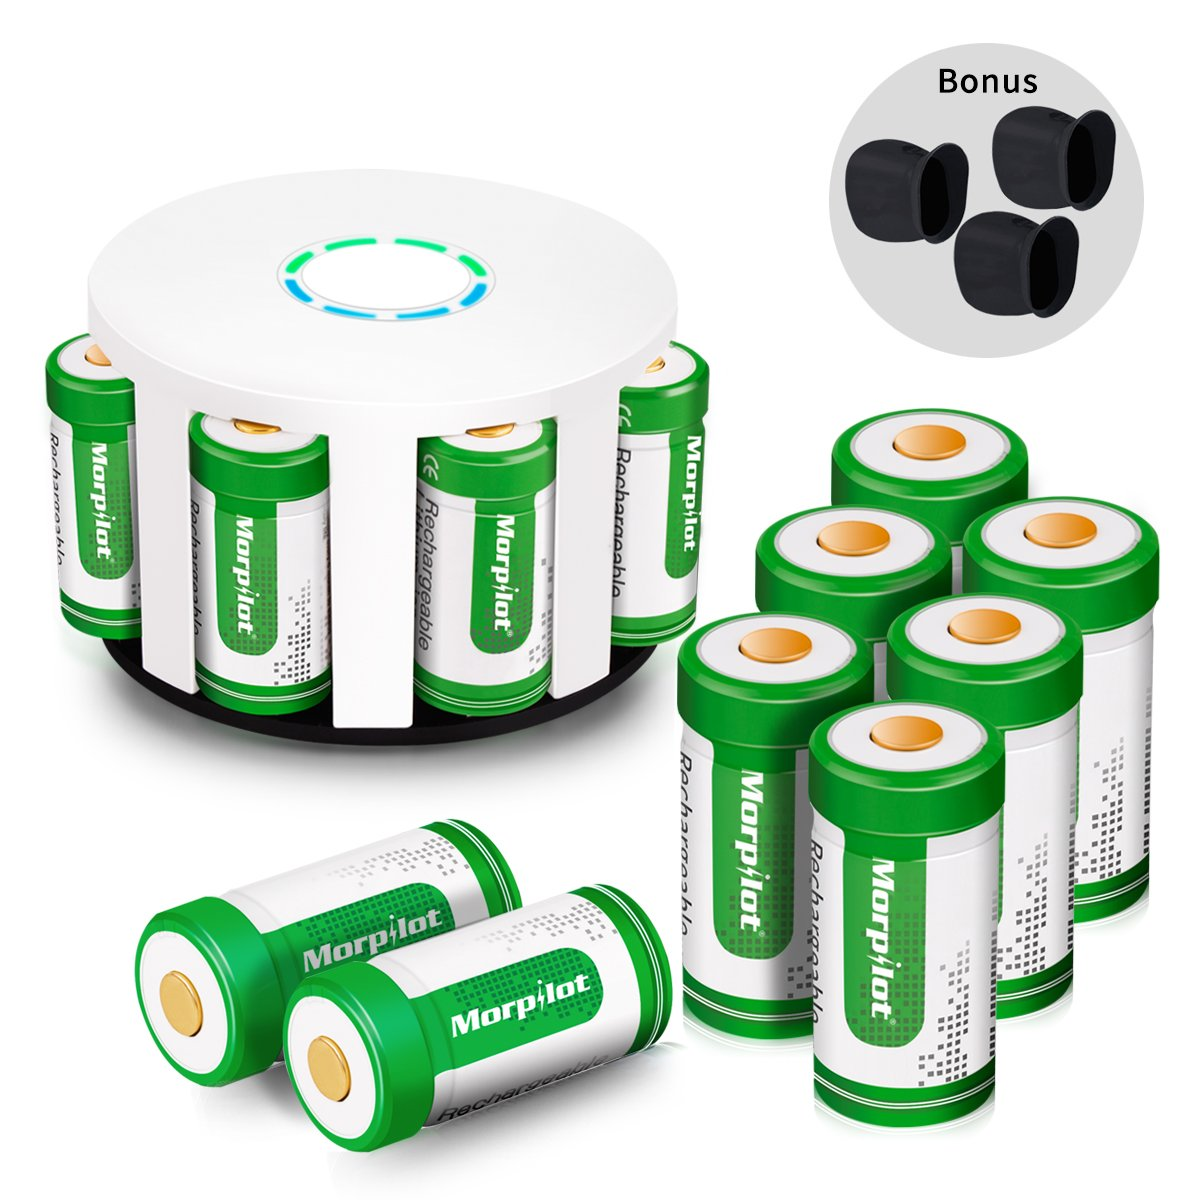 Morpilot 12Pcs RCR123A Rechargeable Batteries and 8-Ports Charger, 3.7V 700mAh Li-ion Battery Camera Skin for Arlo VMS3030/3230/3330/3430/3530 Security Cameras by Morpilot